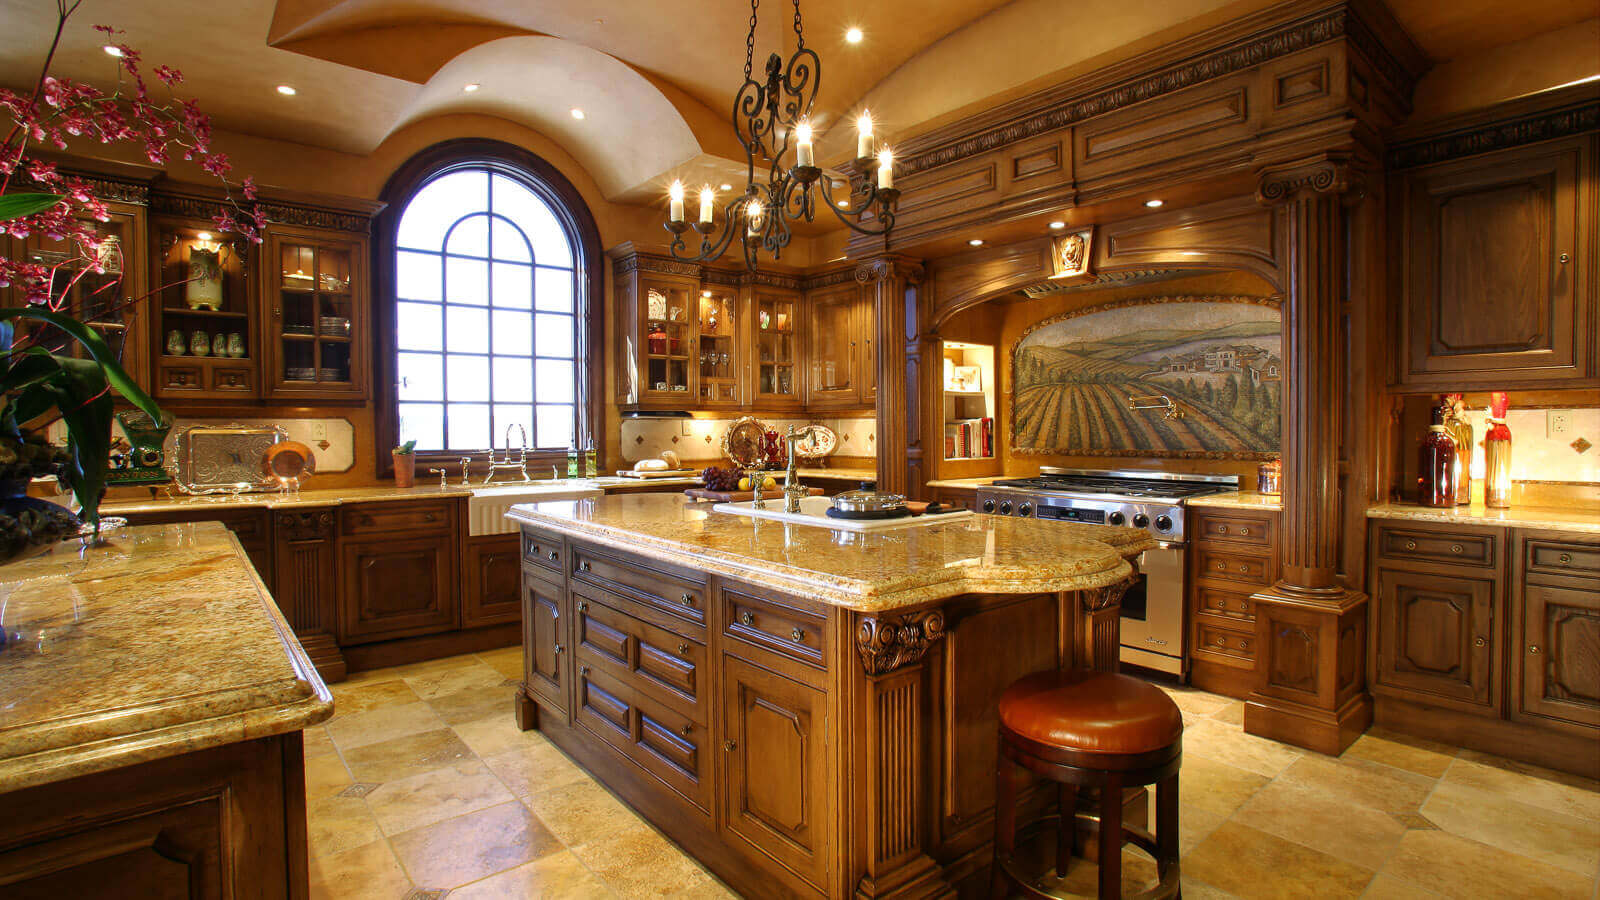 74 Kitchen Design Gallery The Ultimate Solution To Kitchen Design